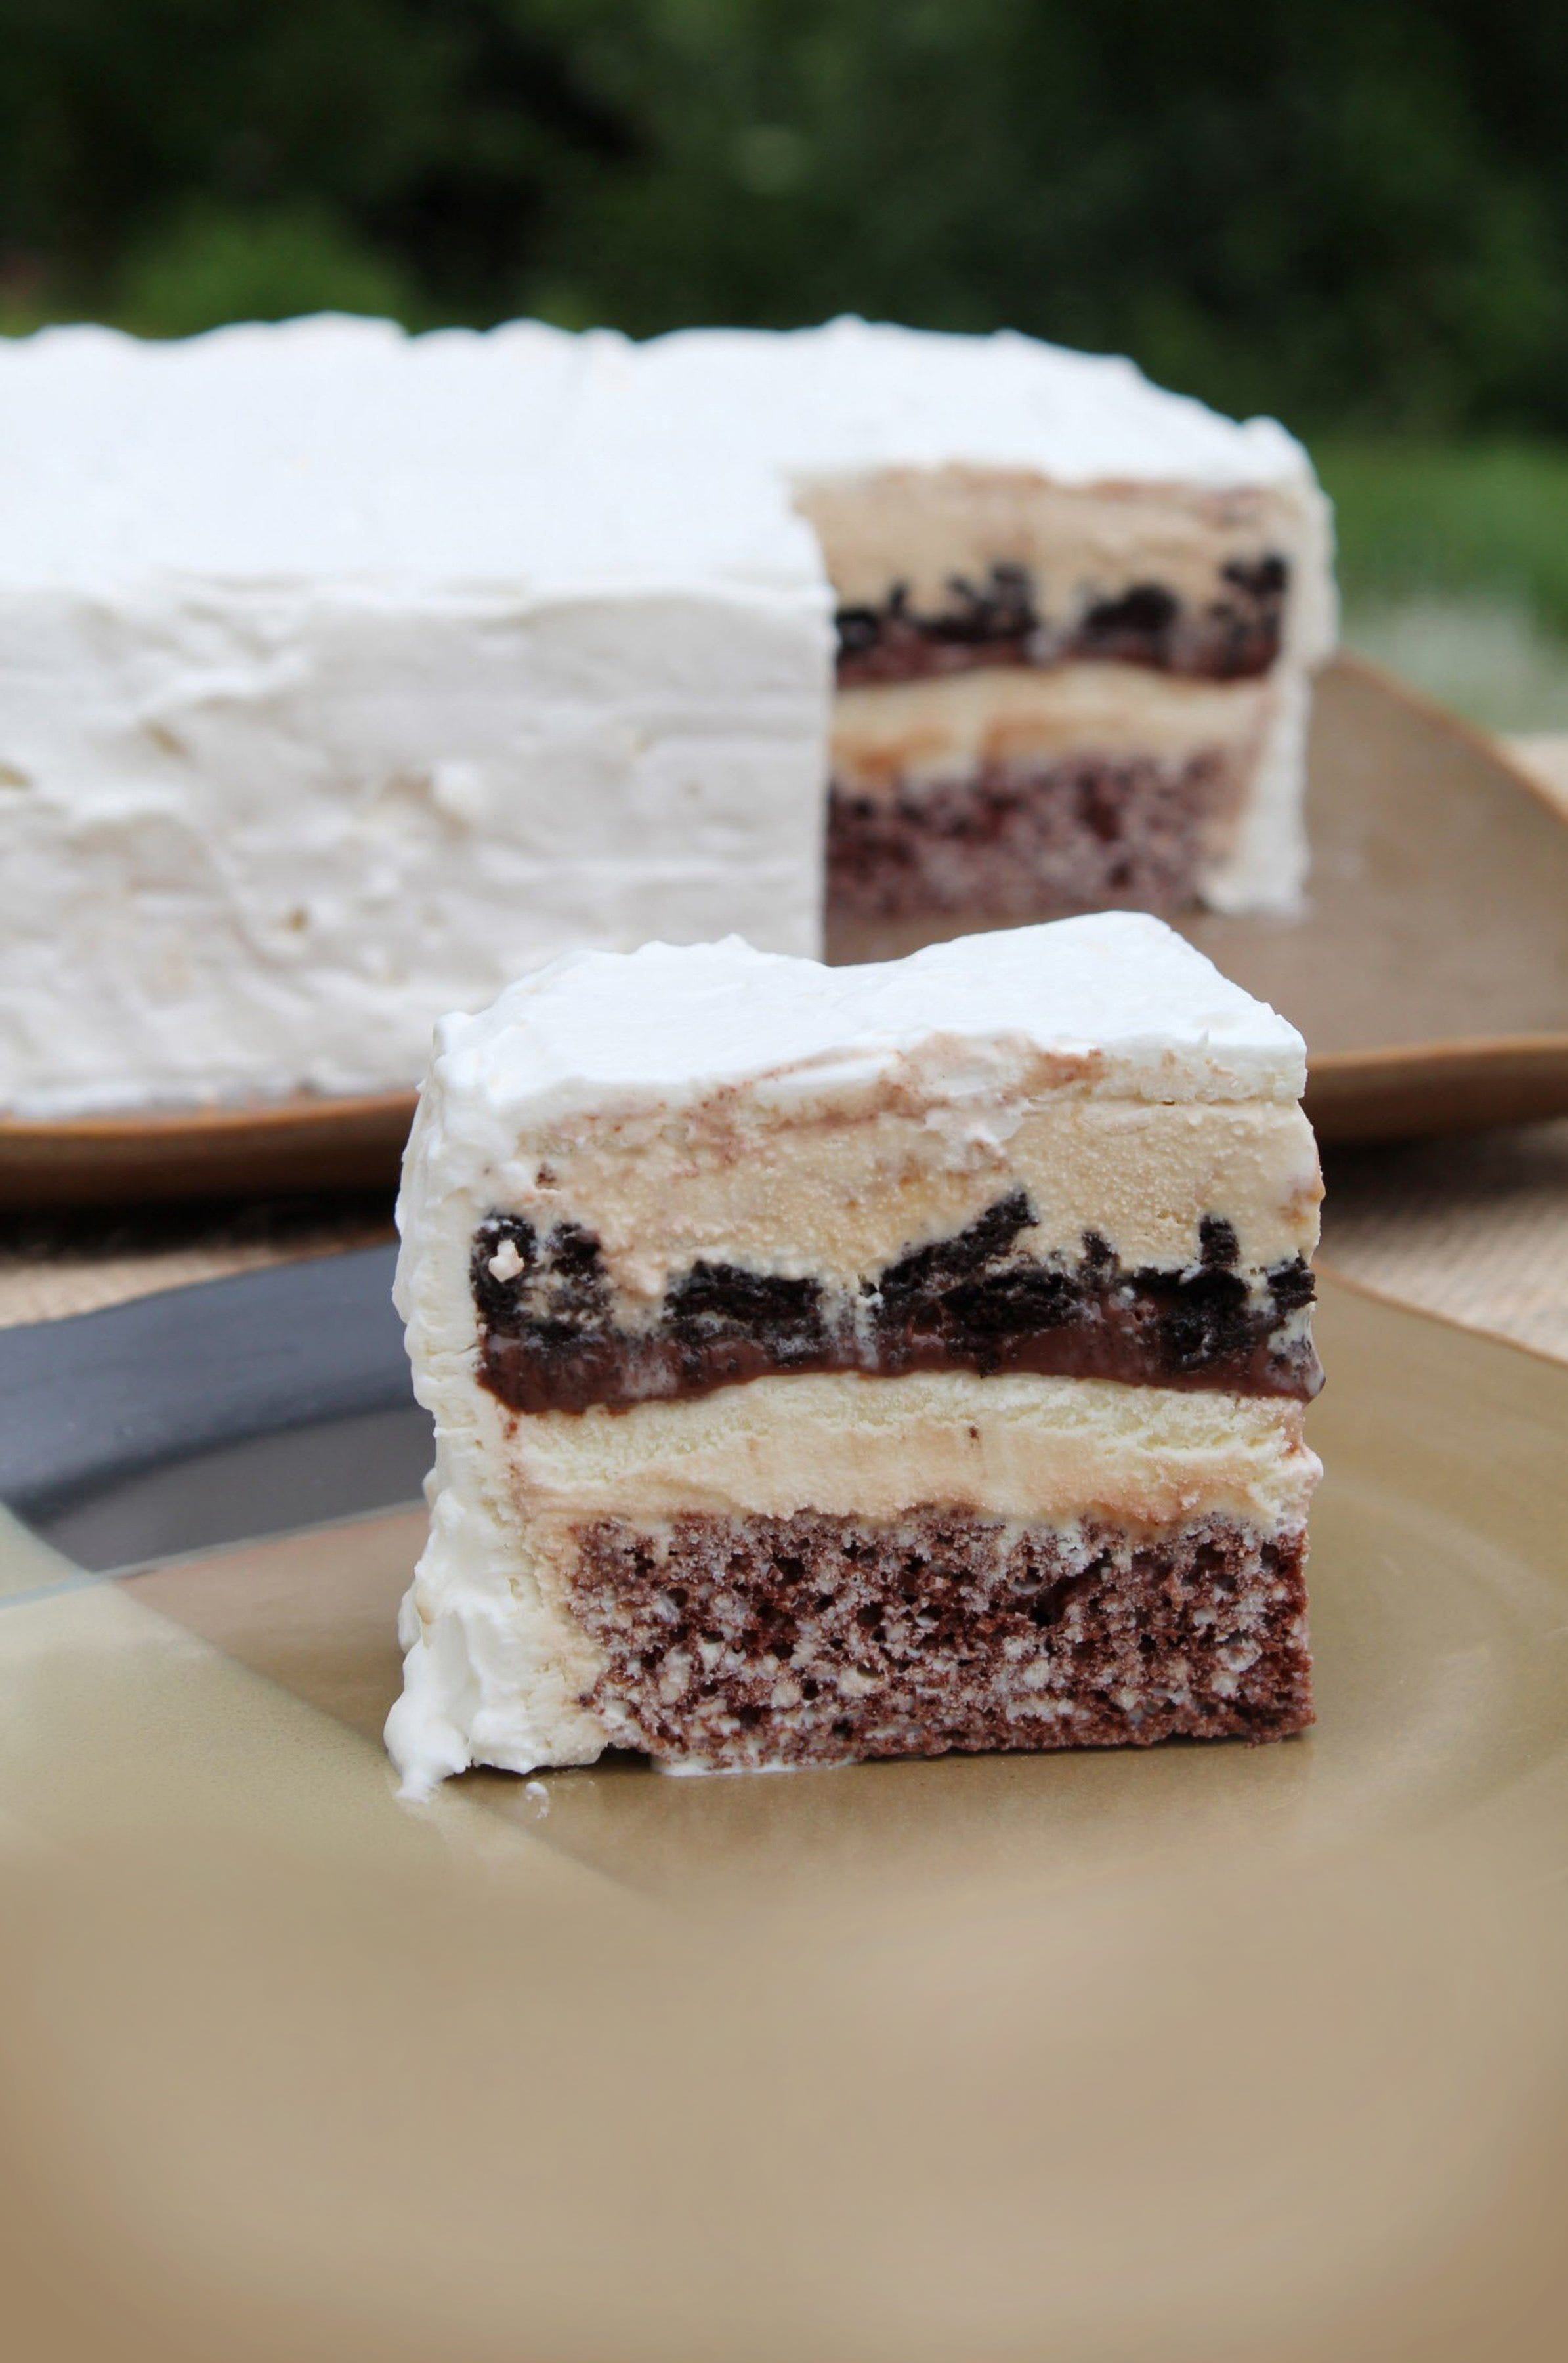 How to make a frozen cake at home